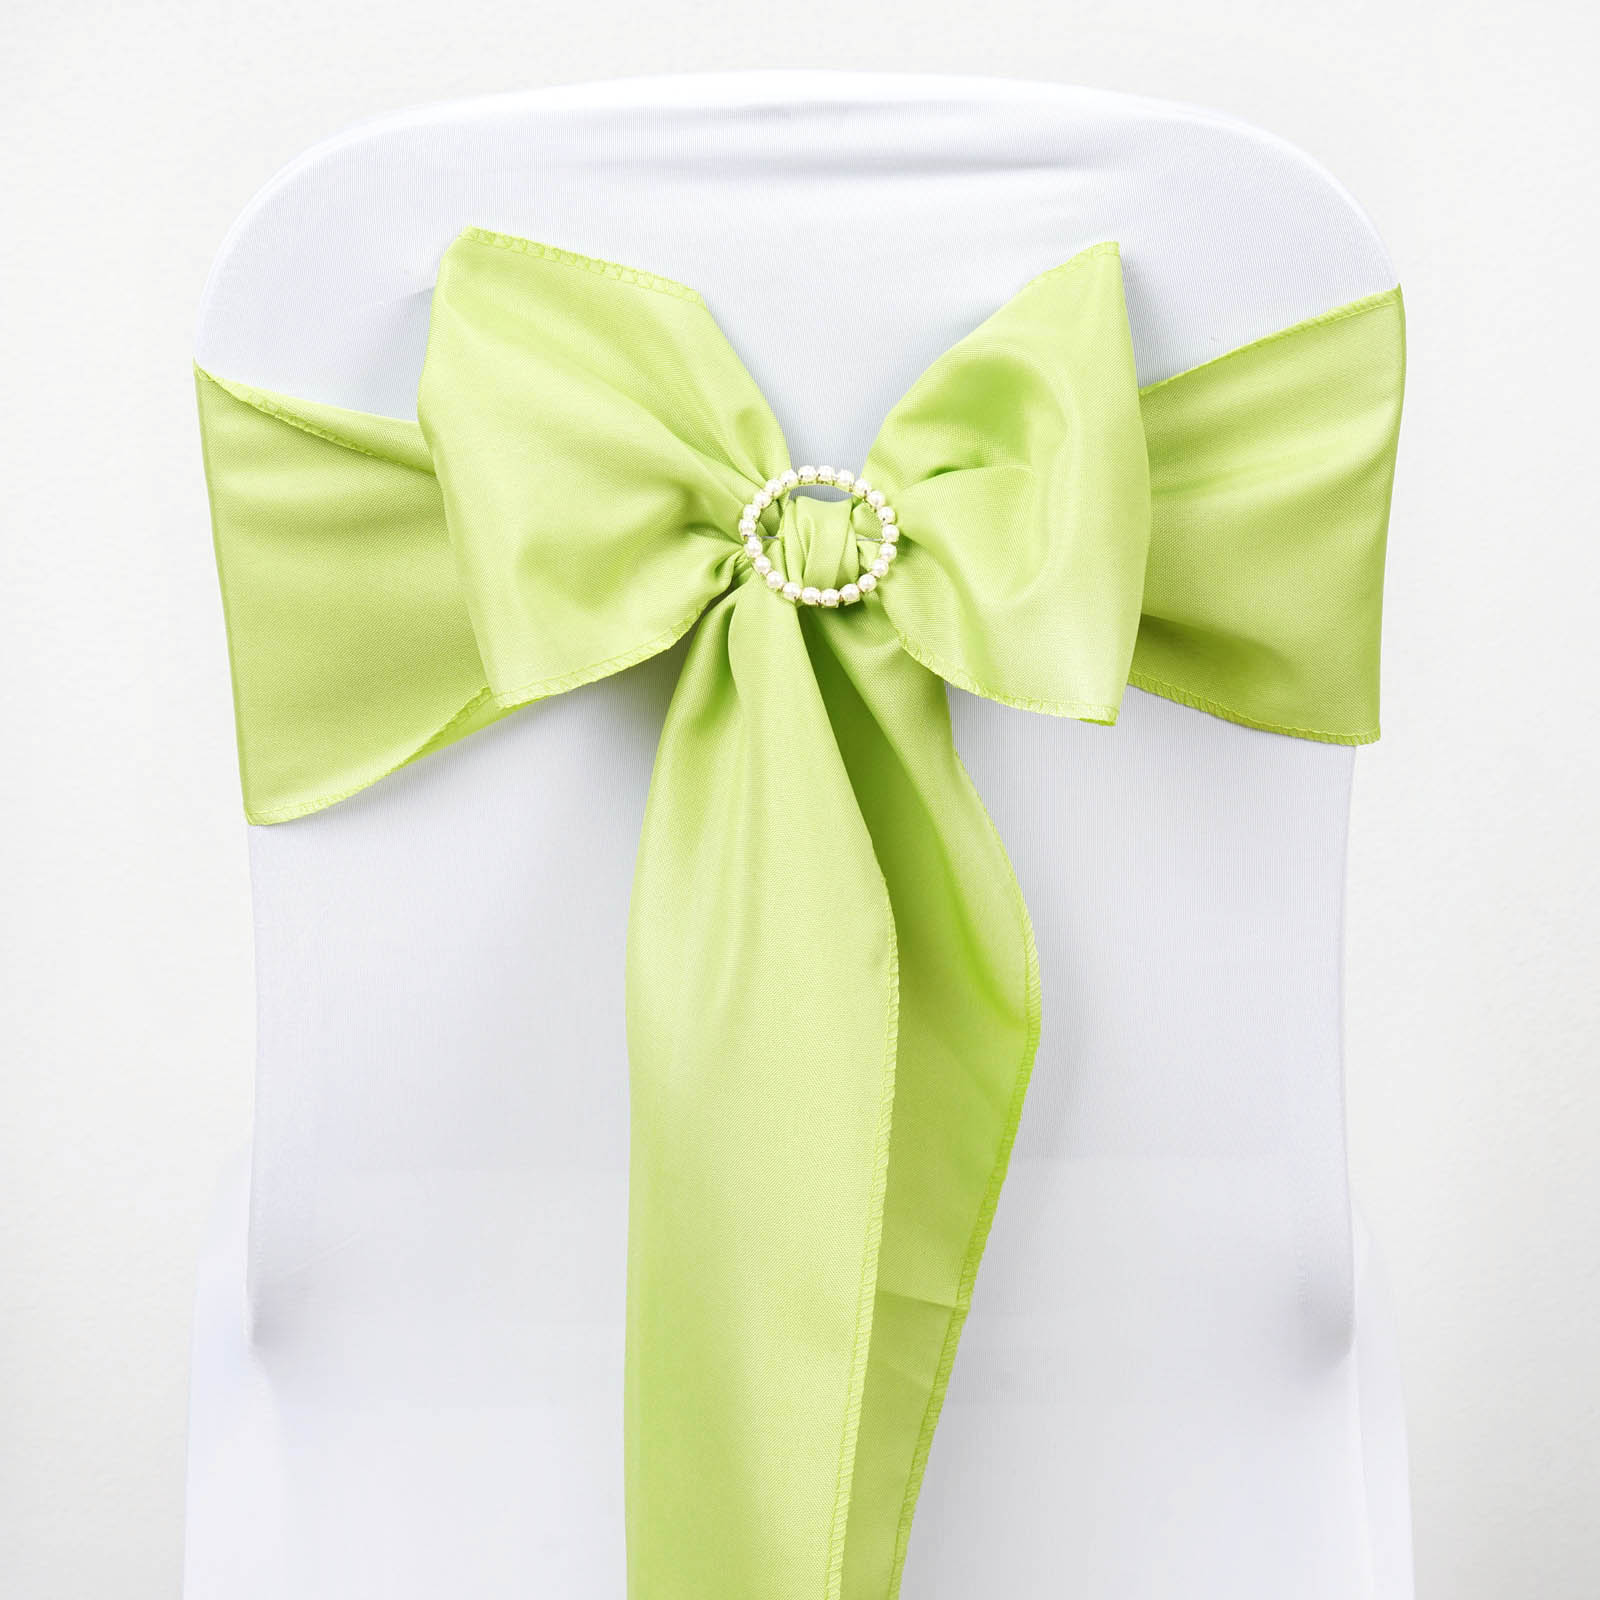 200 Polyester CHAIR SASHES Ties Bows Wedding Party